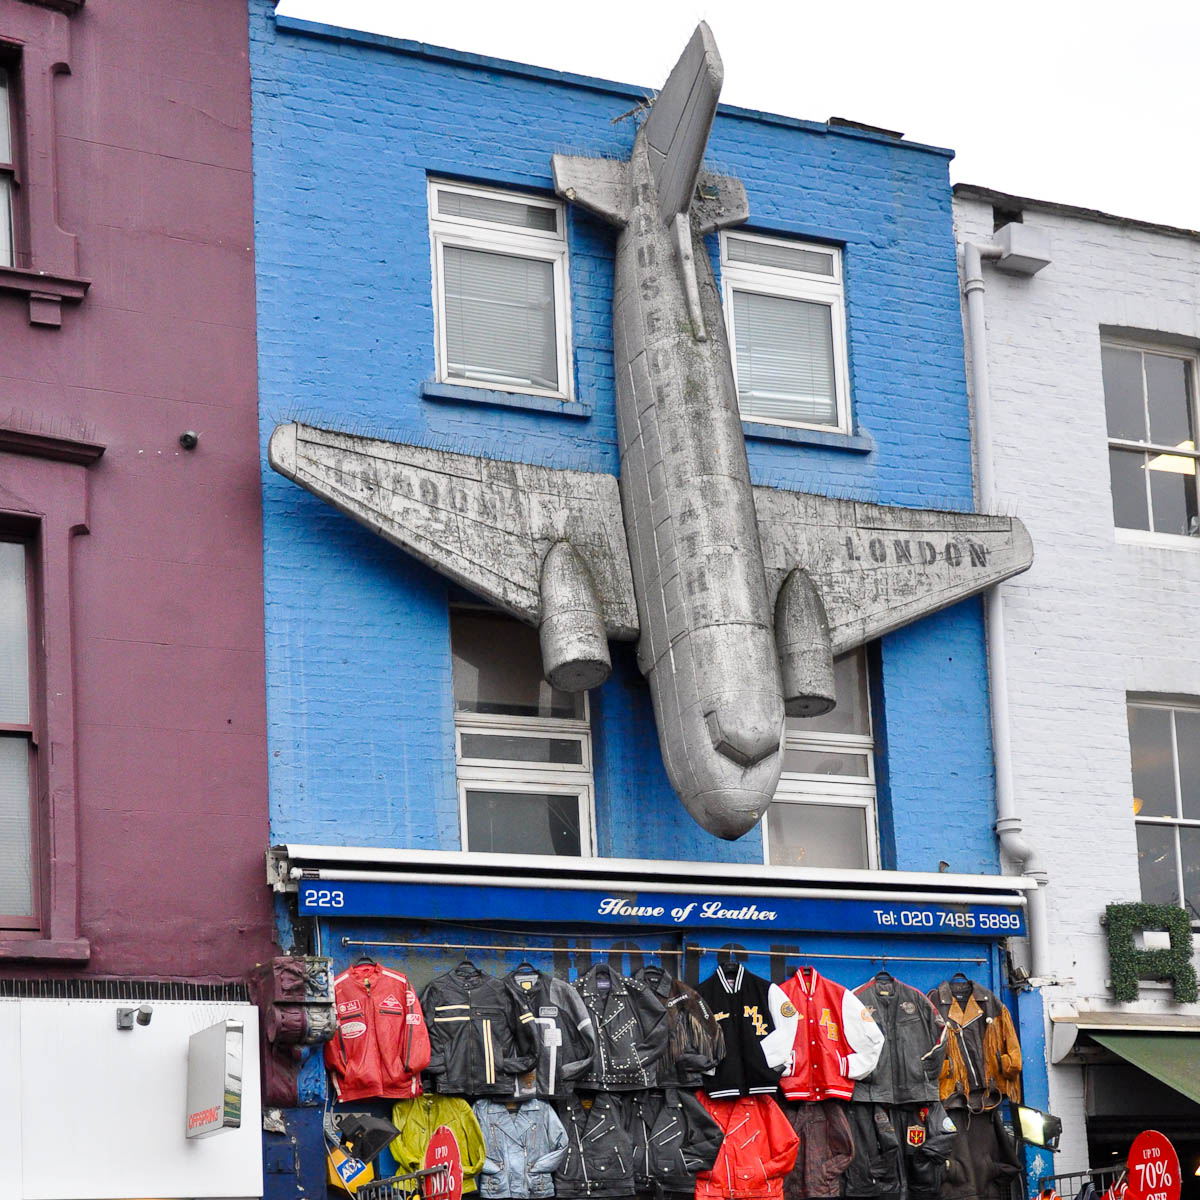 Plane on a shop, Camden Town, London, England